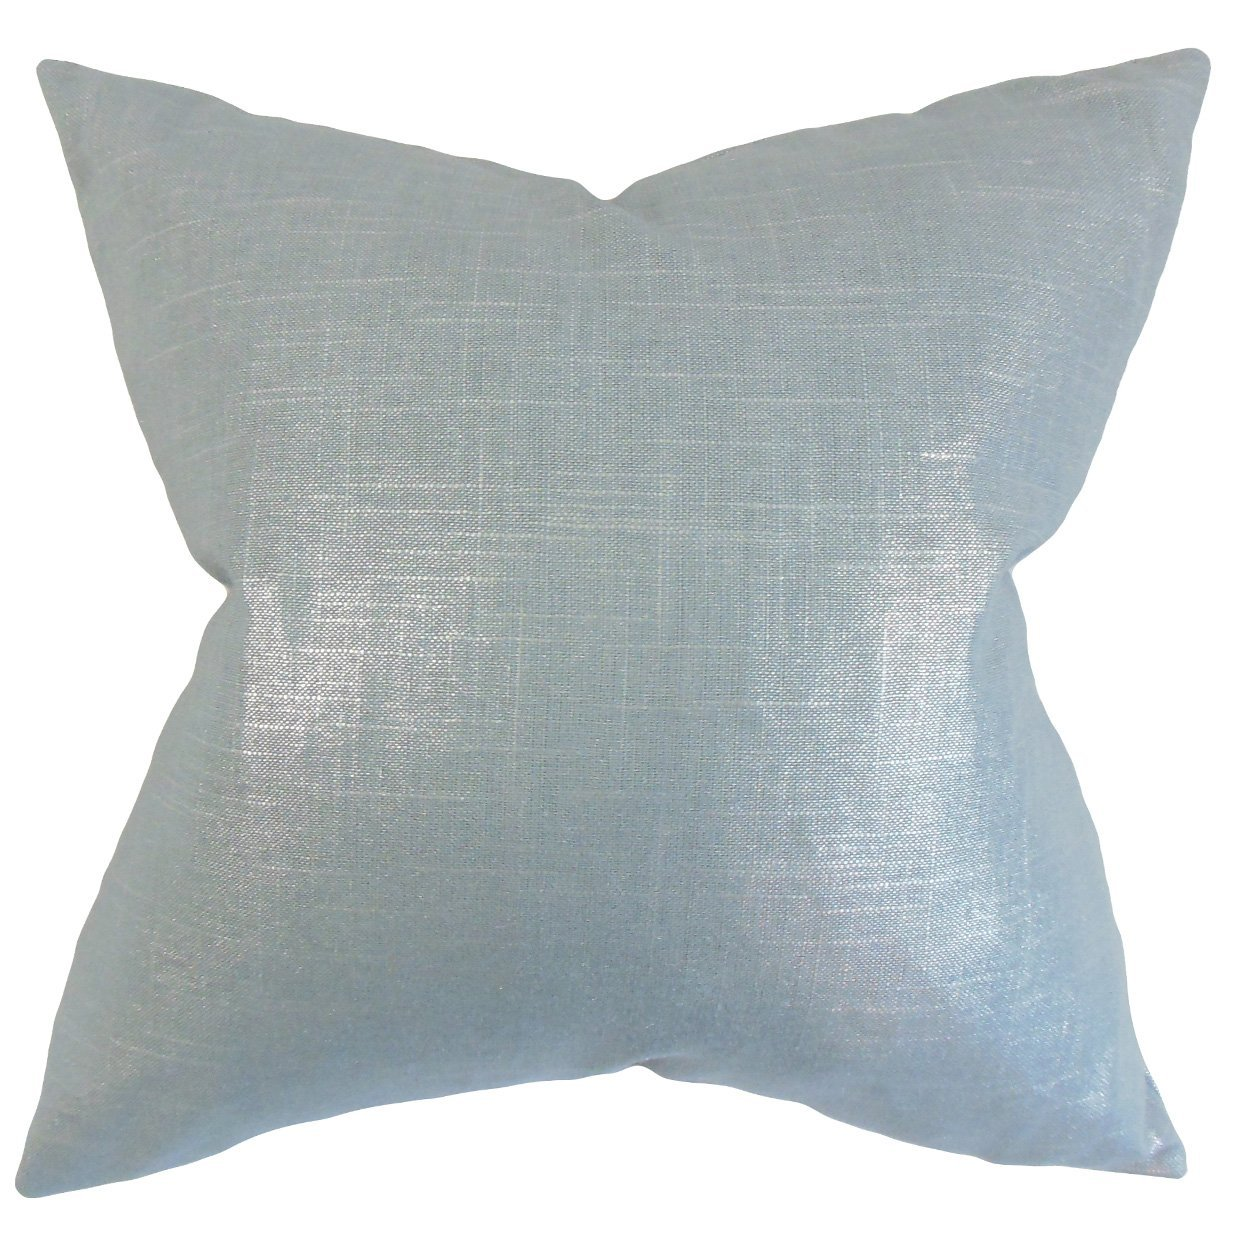 The Pillow Collection Florin Solid Bedding Sham Light Blue Queen//20 x 30,